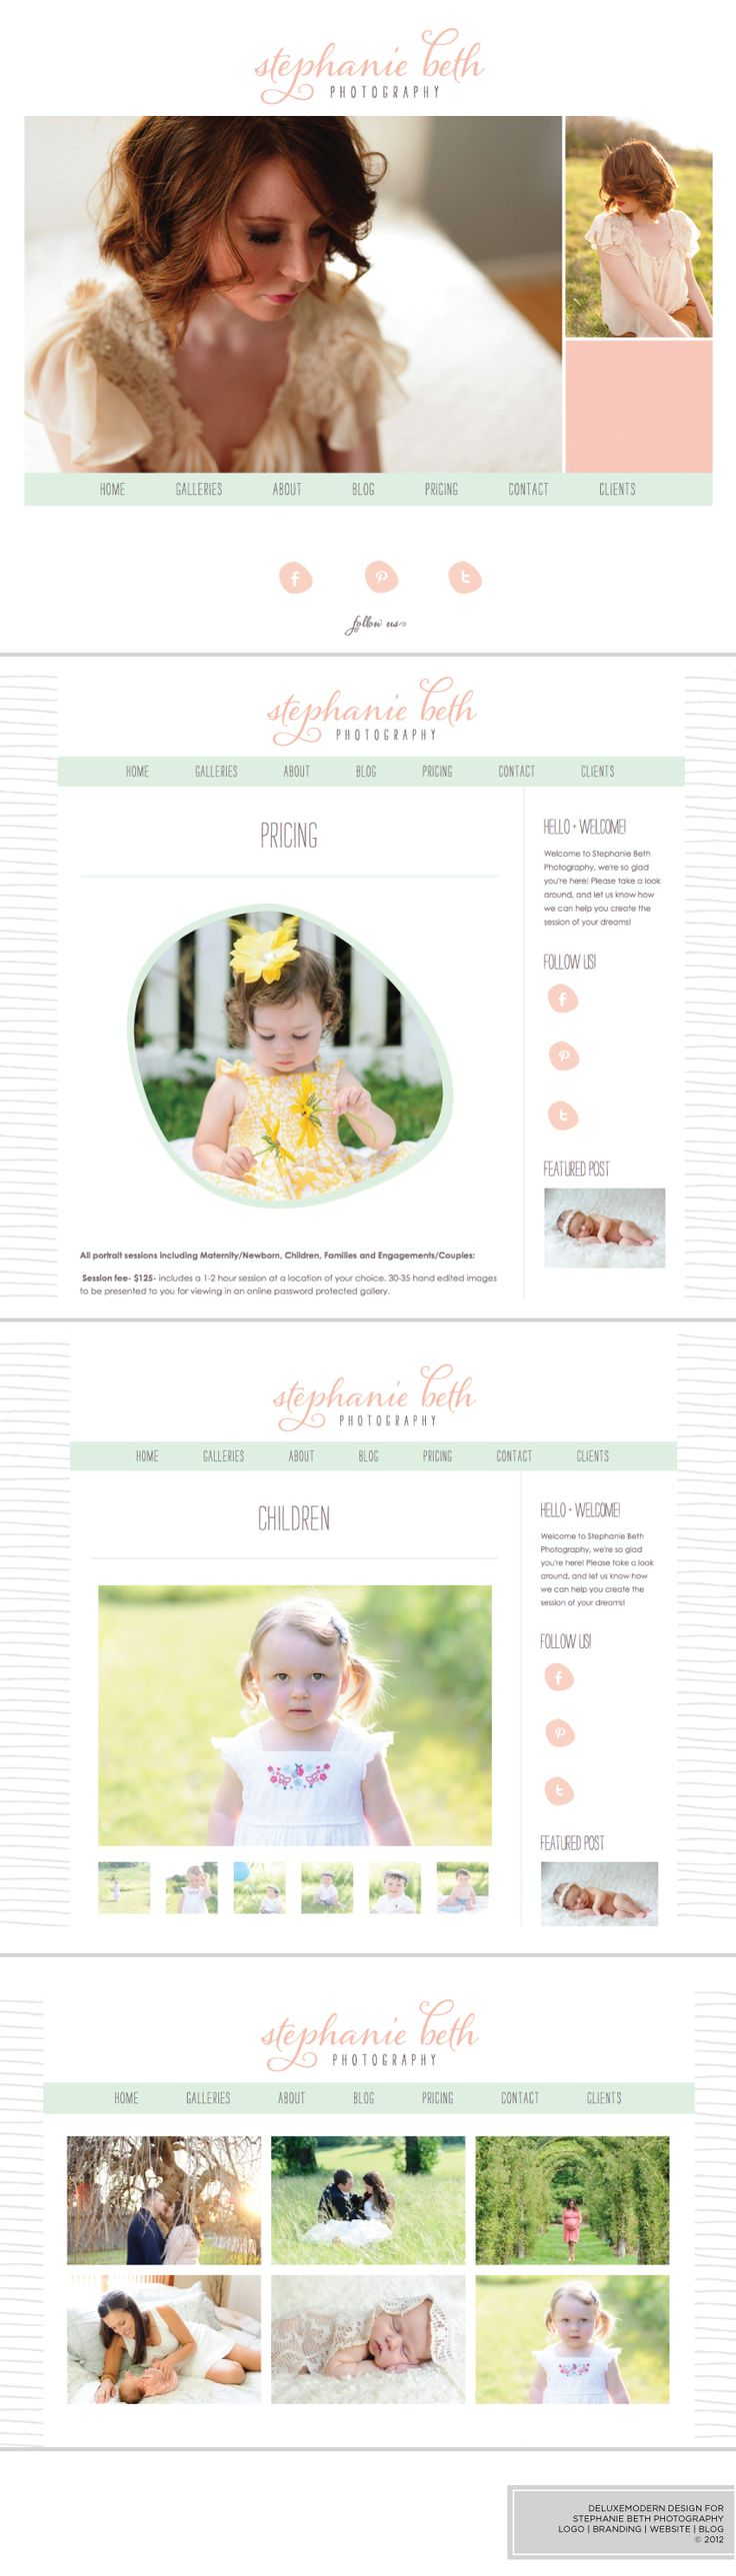 Deluxemodern Design for Stephanie Beth Photography. Branding | Website | Blog. #photography #logo